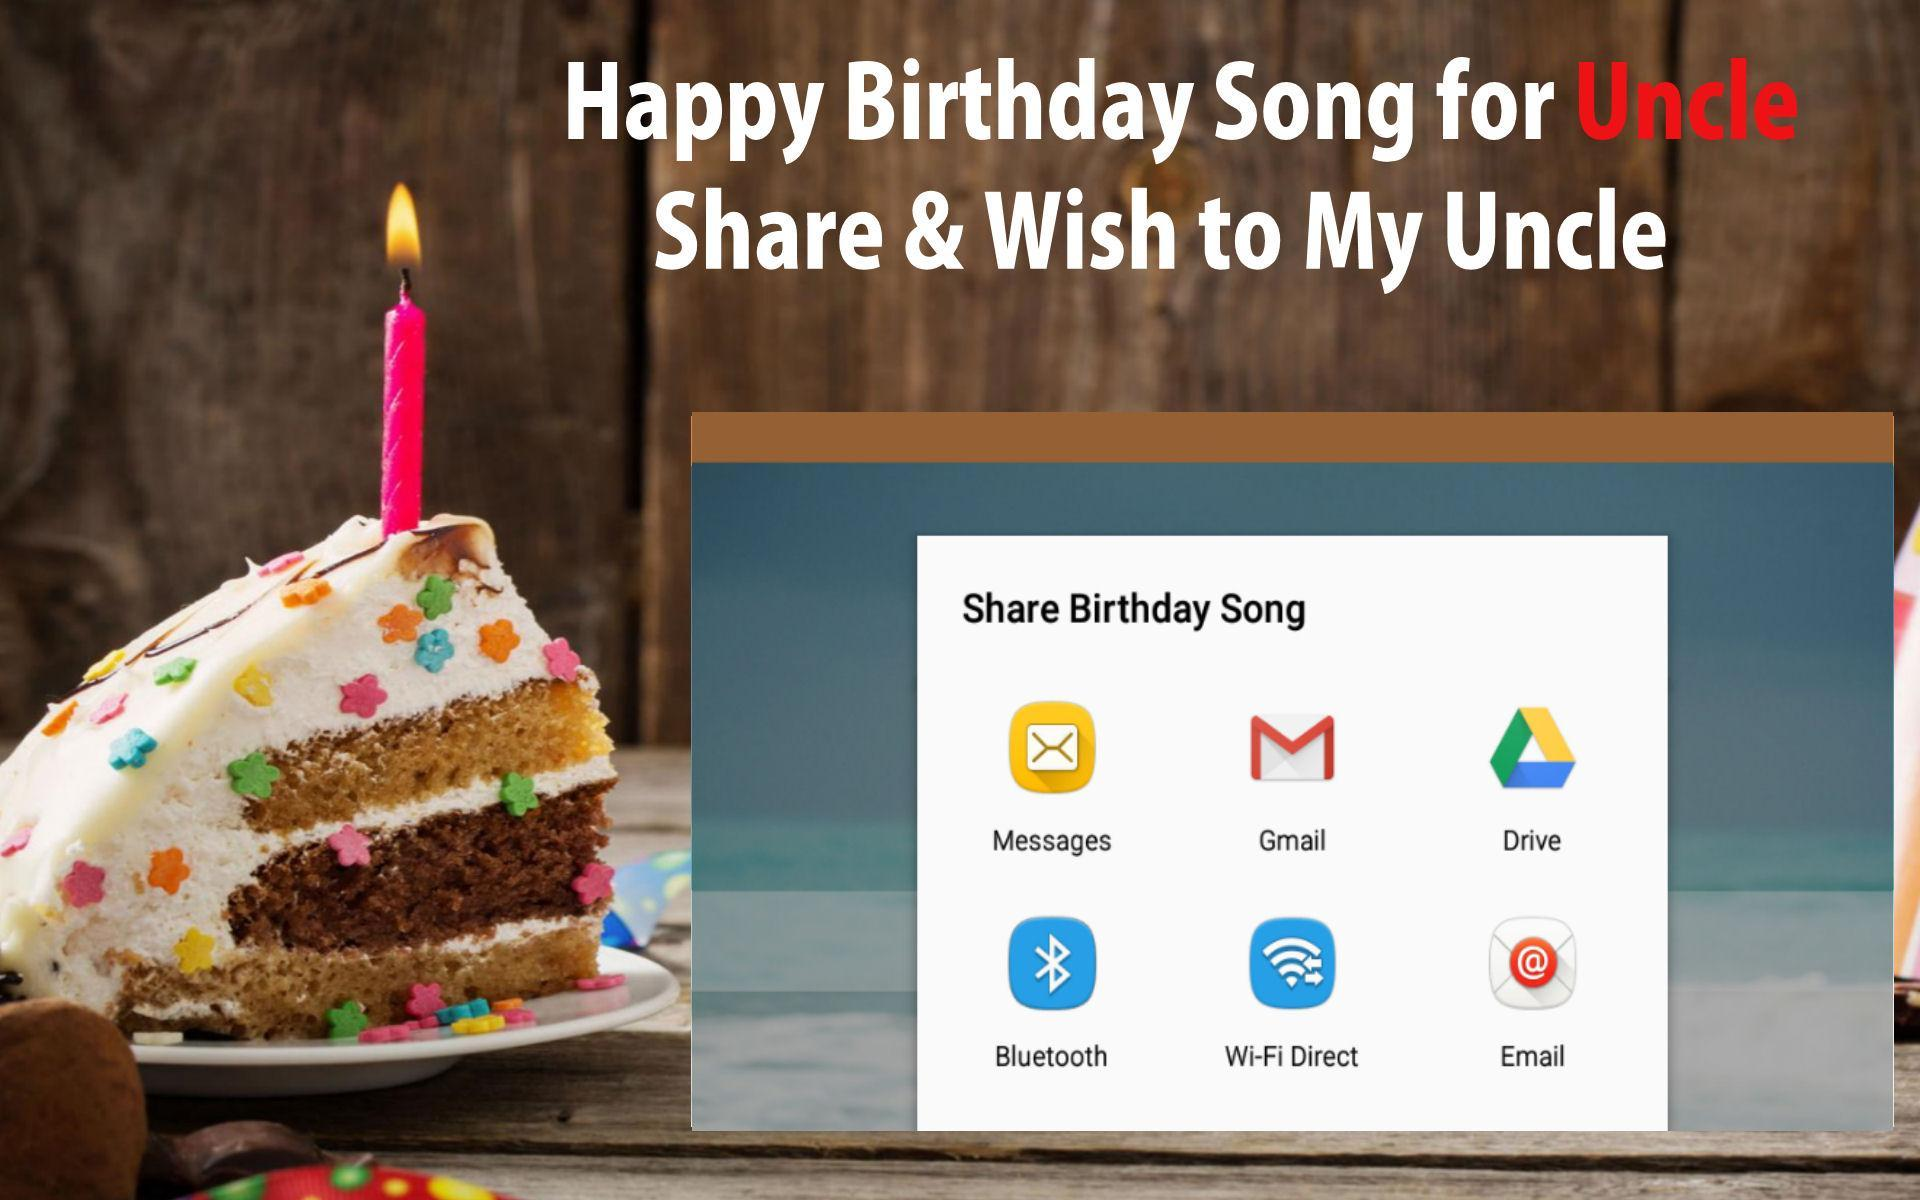 Happy Birthday Song For Uncle for Android - APK Download